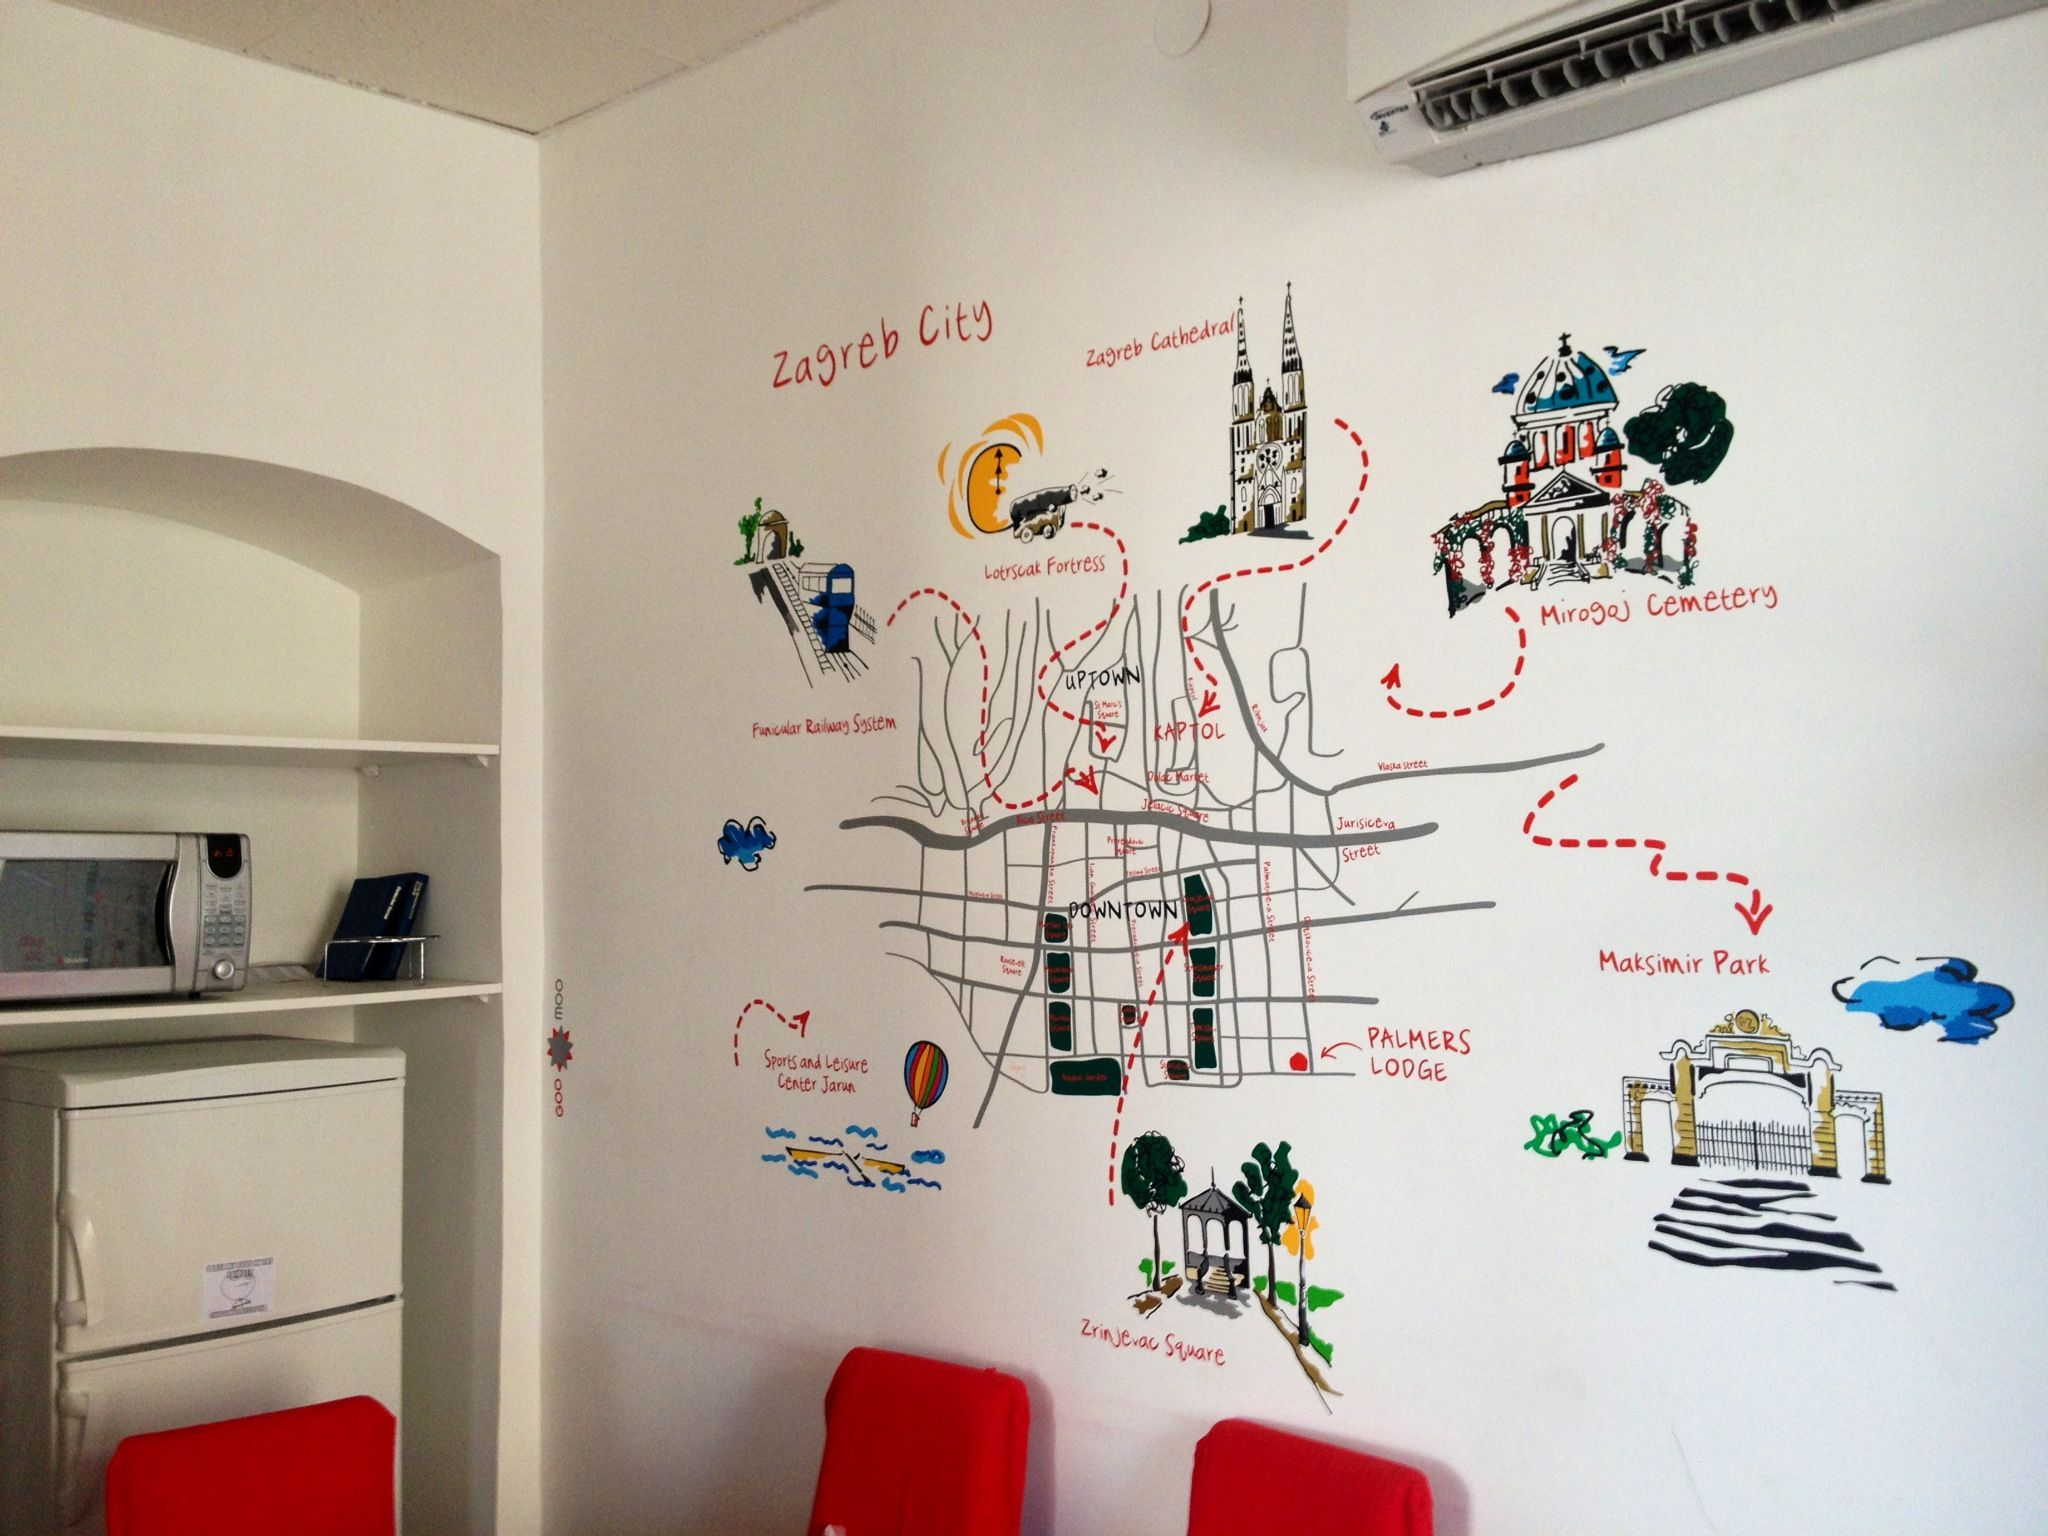 Palmers Lodge Zagreb Wall Map Palmers Lodge Zagreb Wall Map Design Best Hostel Travel City Backpackers Youth Accommodatio Wall Maps Zagreb Design